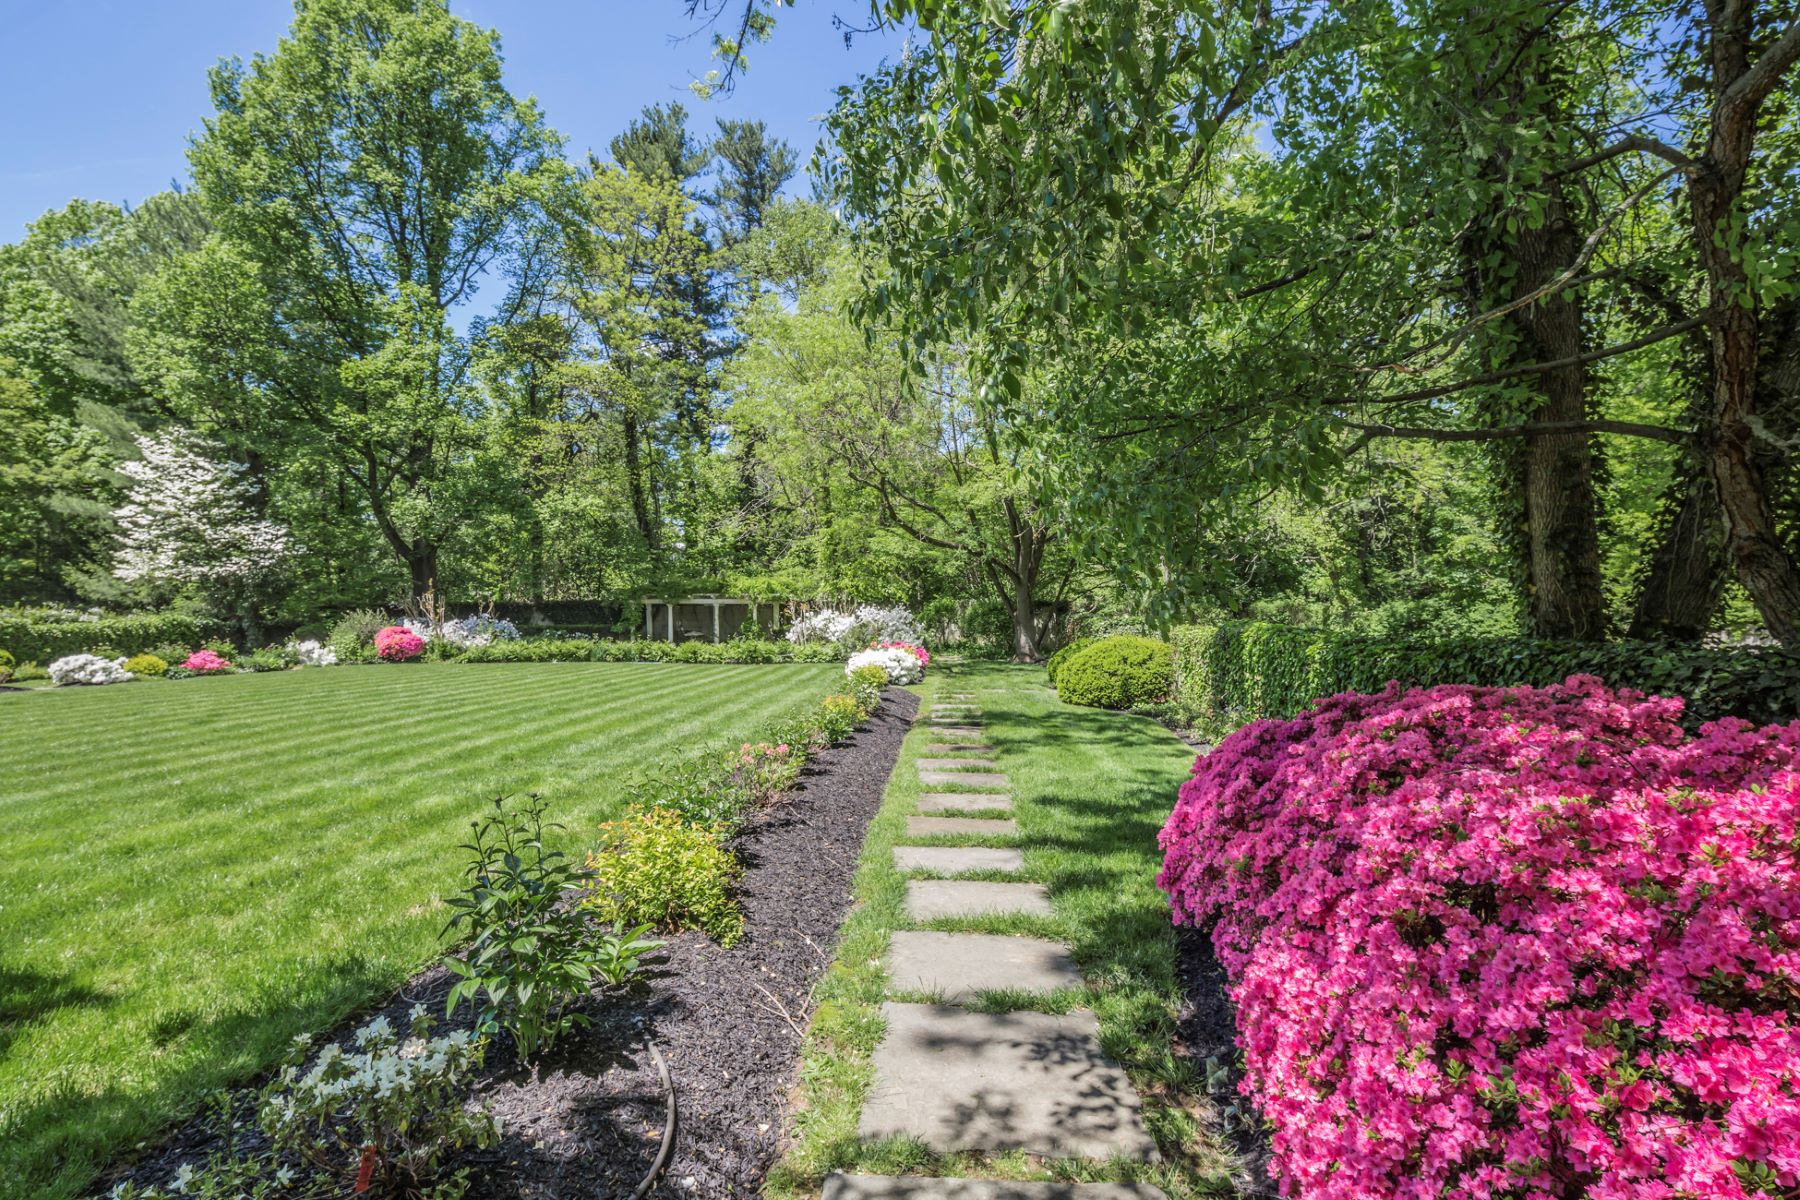 Additional photo for property listing at Turning Heads on Hodge Road for Almost A Century 149 Hodge Road, Princeton, New Jersey 08540 Stati Uniti